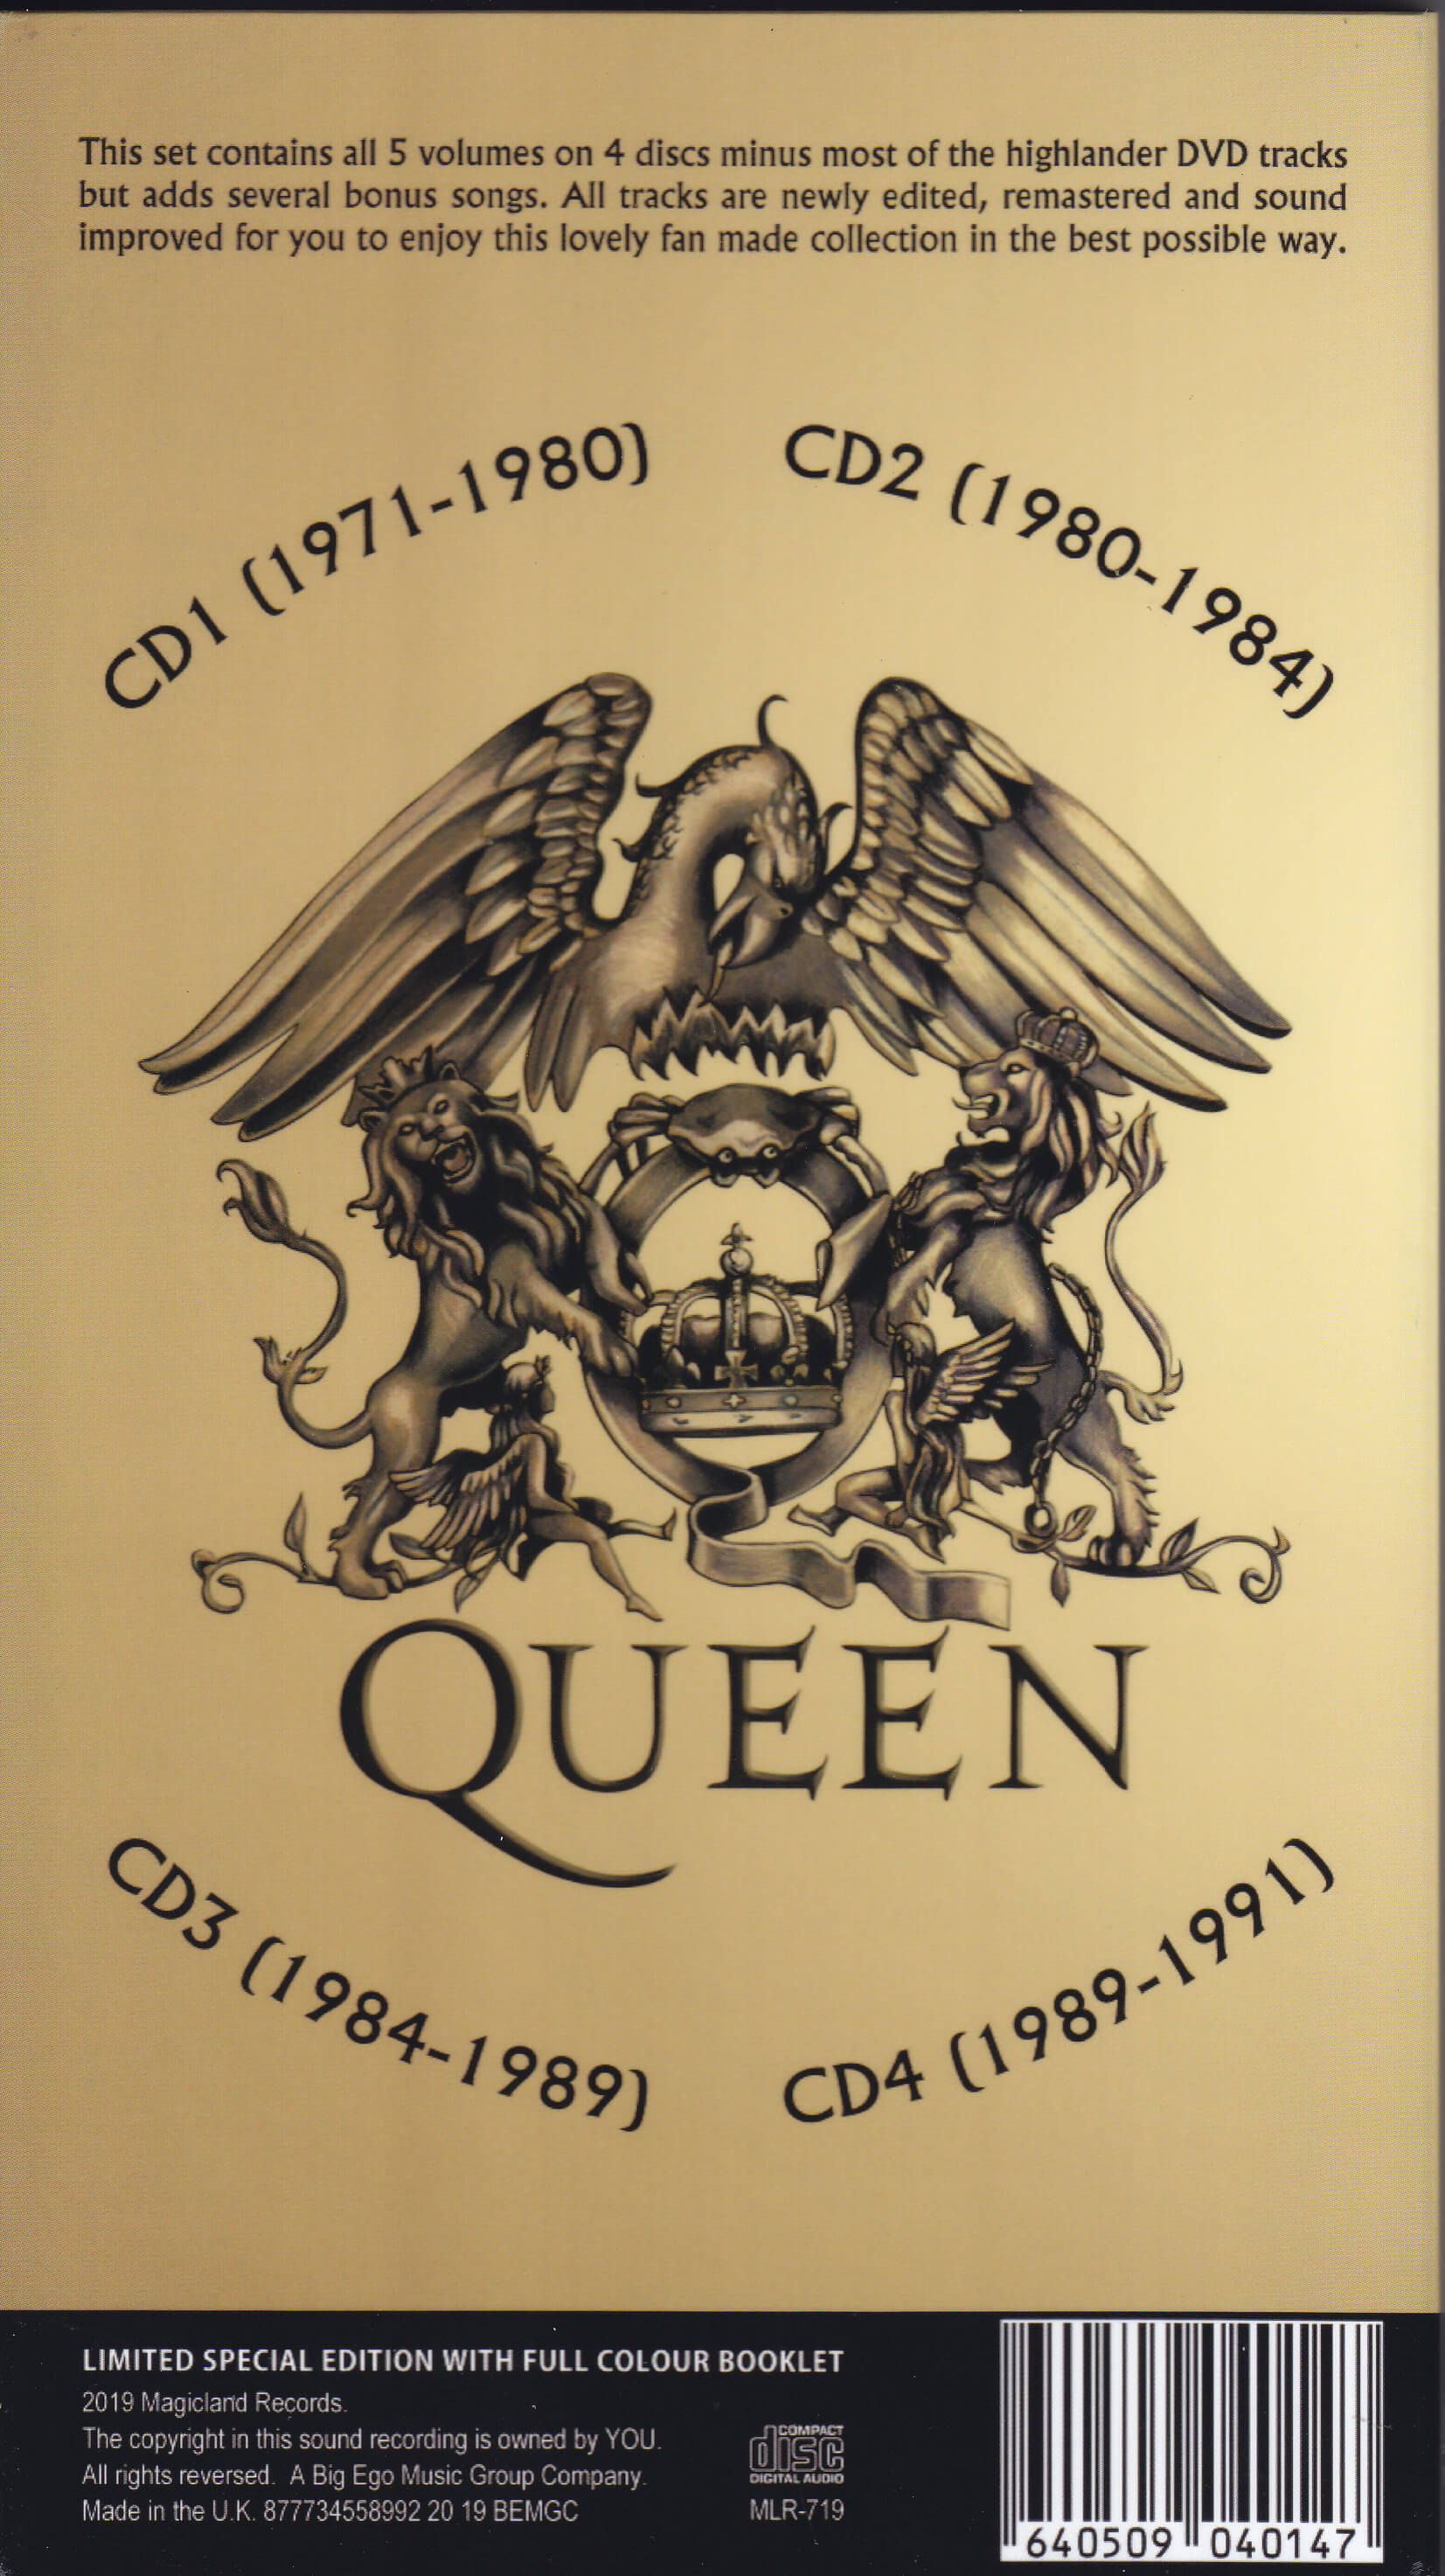 Queen / The Vaults Demos And Rare Stuff 1971-1991 / 4CD Long Box